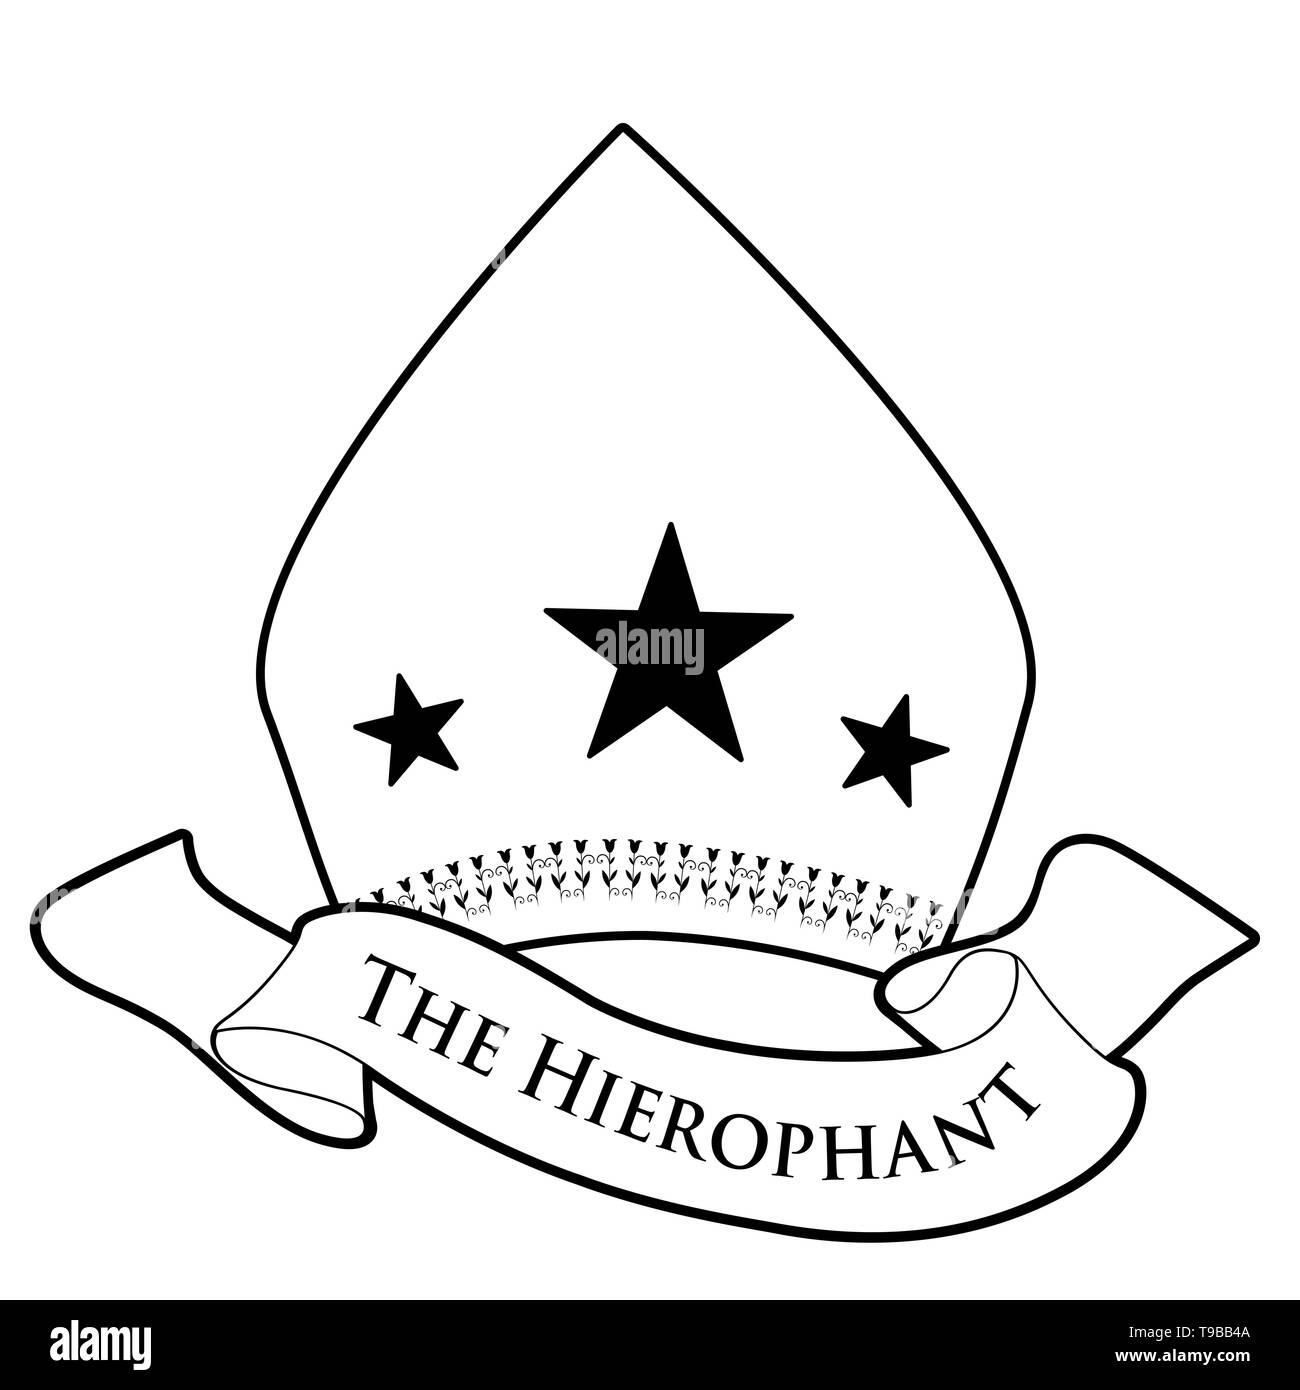 Tarot Card Concept. The Hierophant. Pope miter with stars and banner text isolated on white background - Stock Image